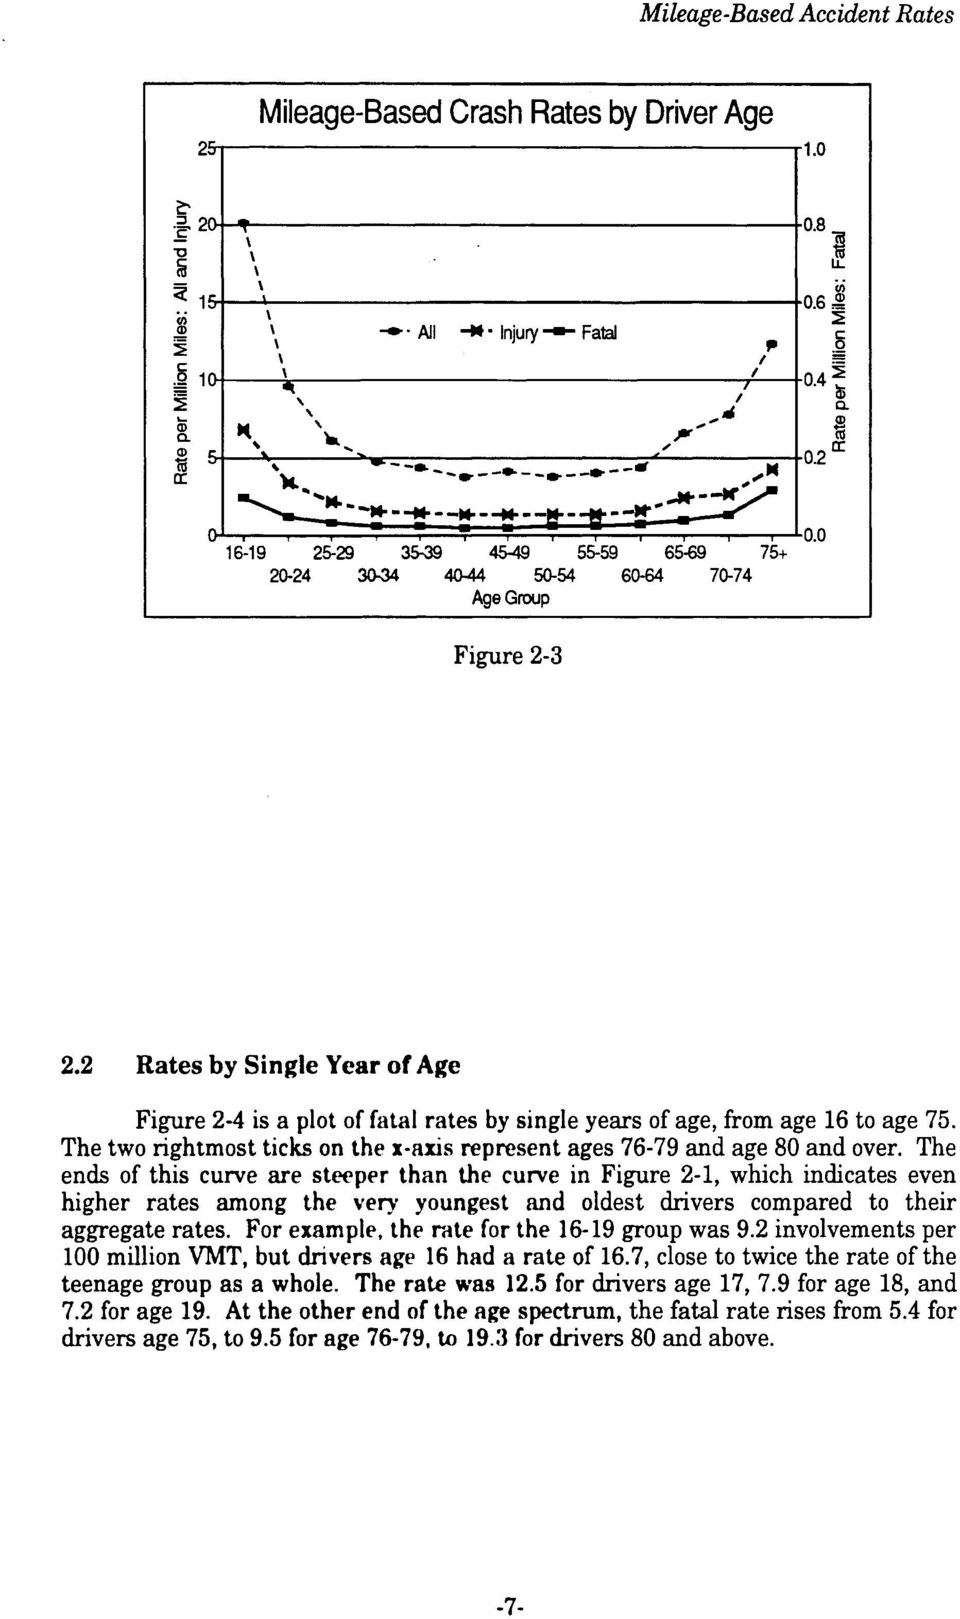 4-0.2 [r 2.2 Rates by Single Year of Age Figure 2-4 is a plot of fatal rates by single years of age, from age 16 to age 75.